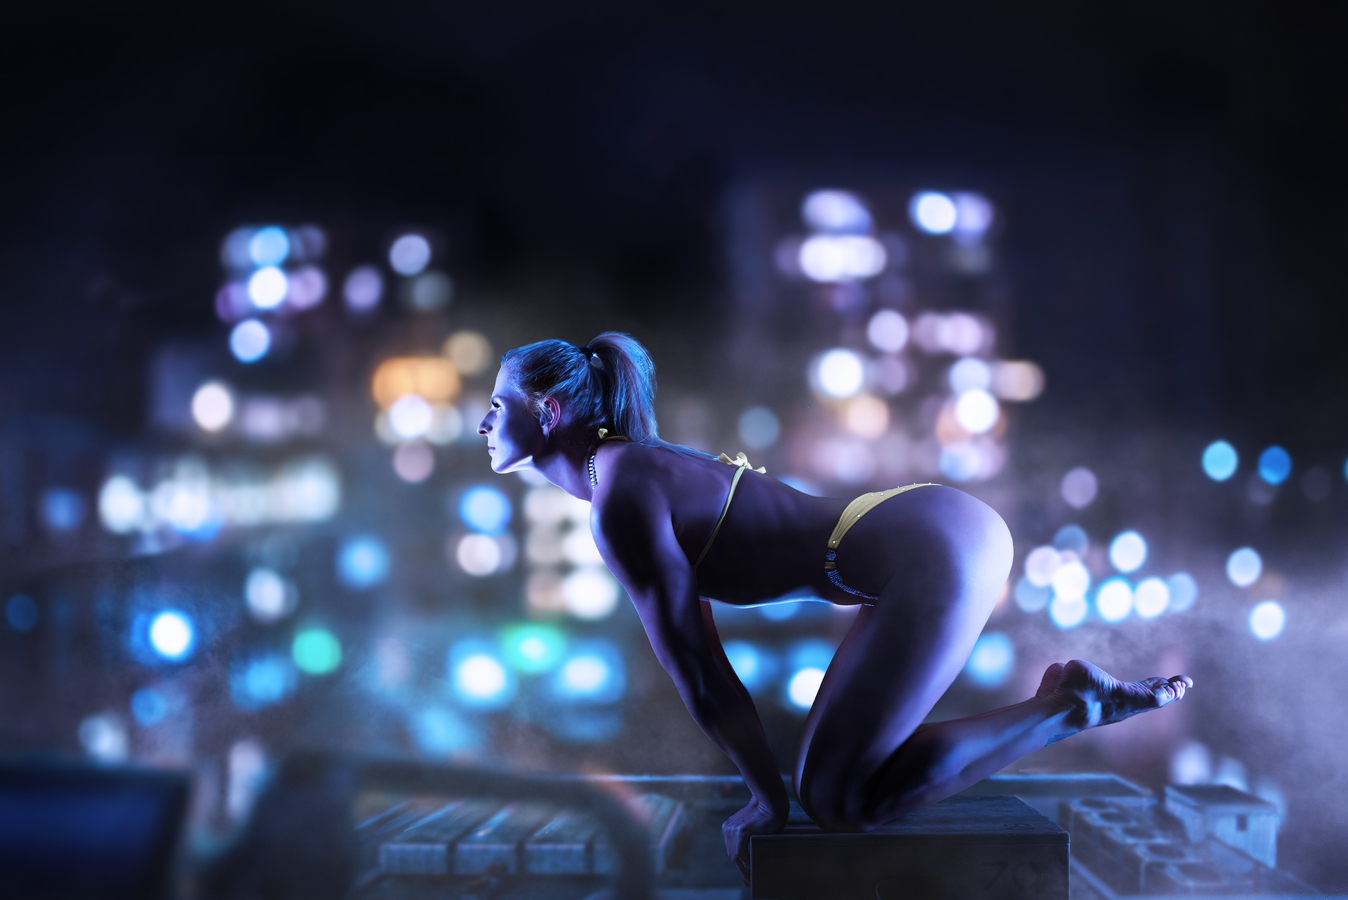 Rooftop night time